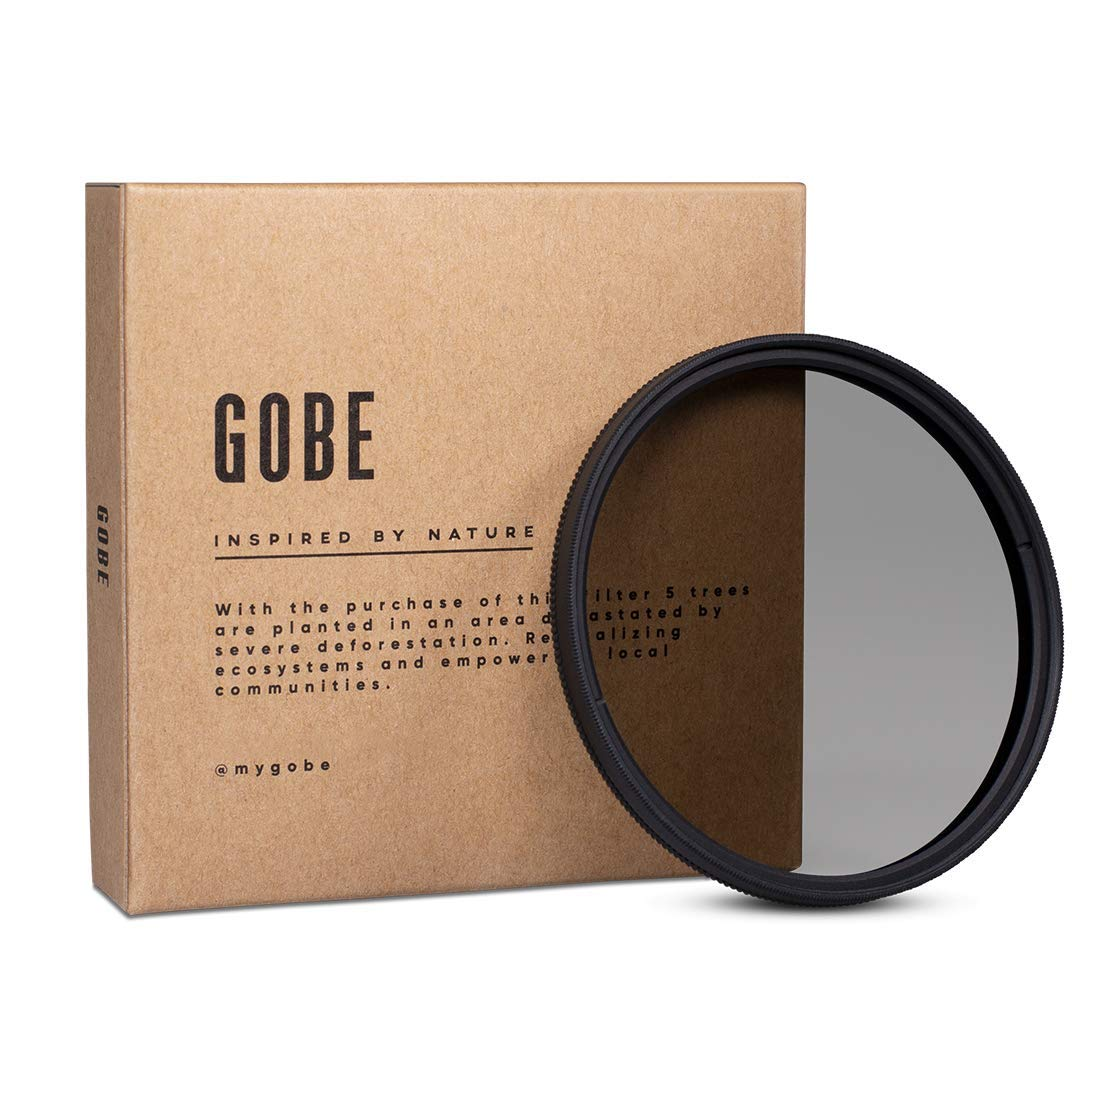 Gobe CPL 82mm Japan Optics Slim Polarized Filter